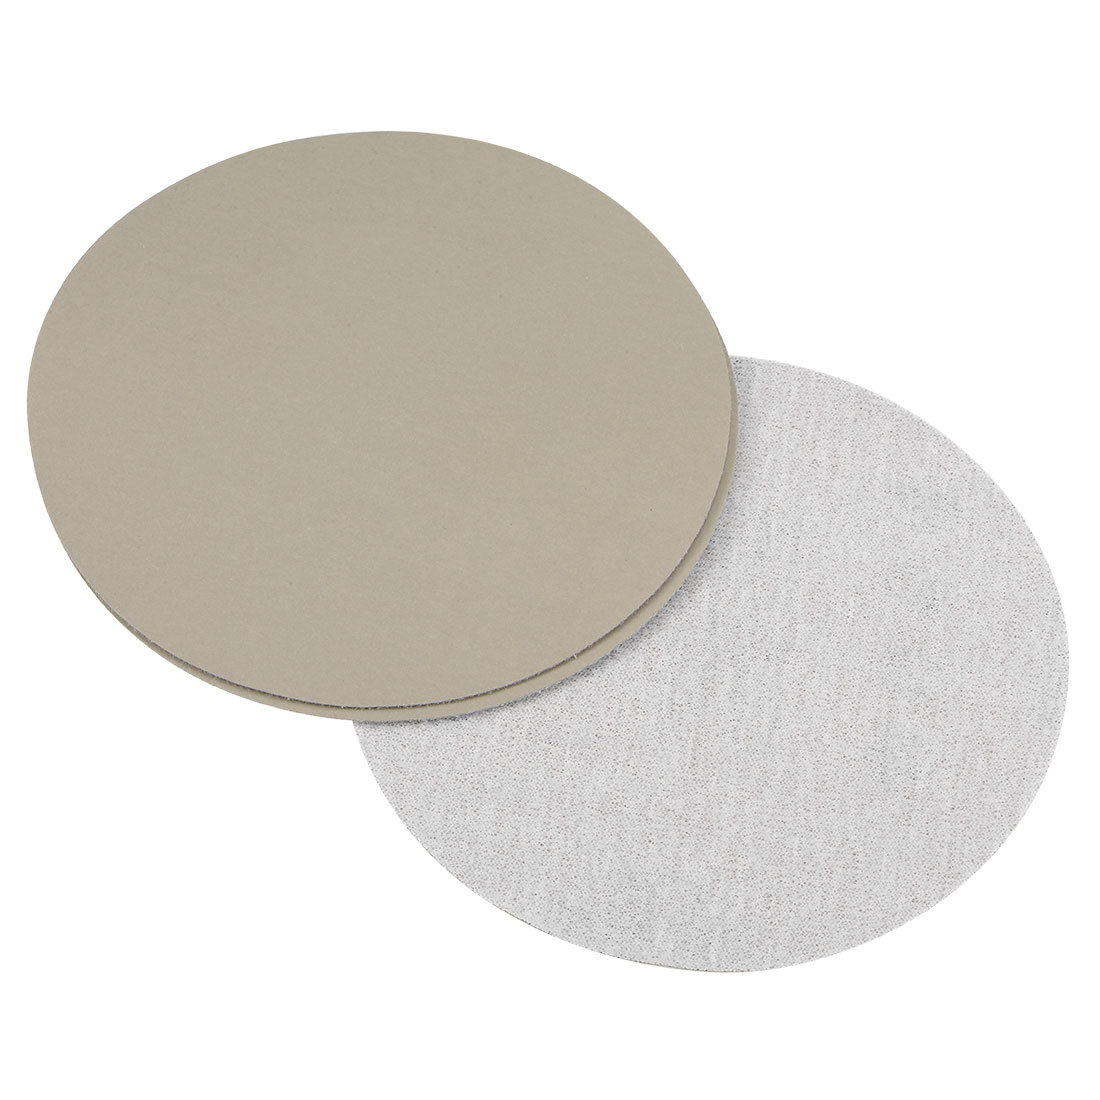 5 inch Wet Dry Discs 4000 Grit Hook and Loop Sanding Disc Silicon Carbide 3pcs